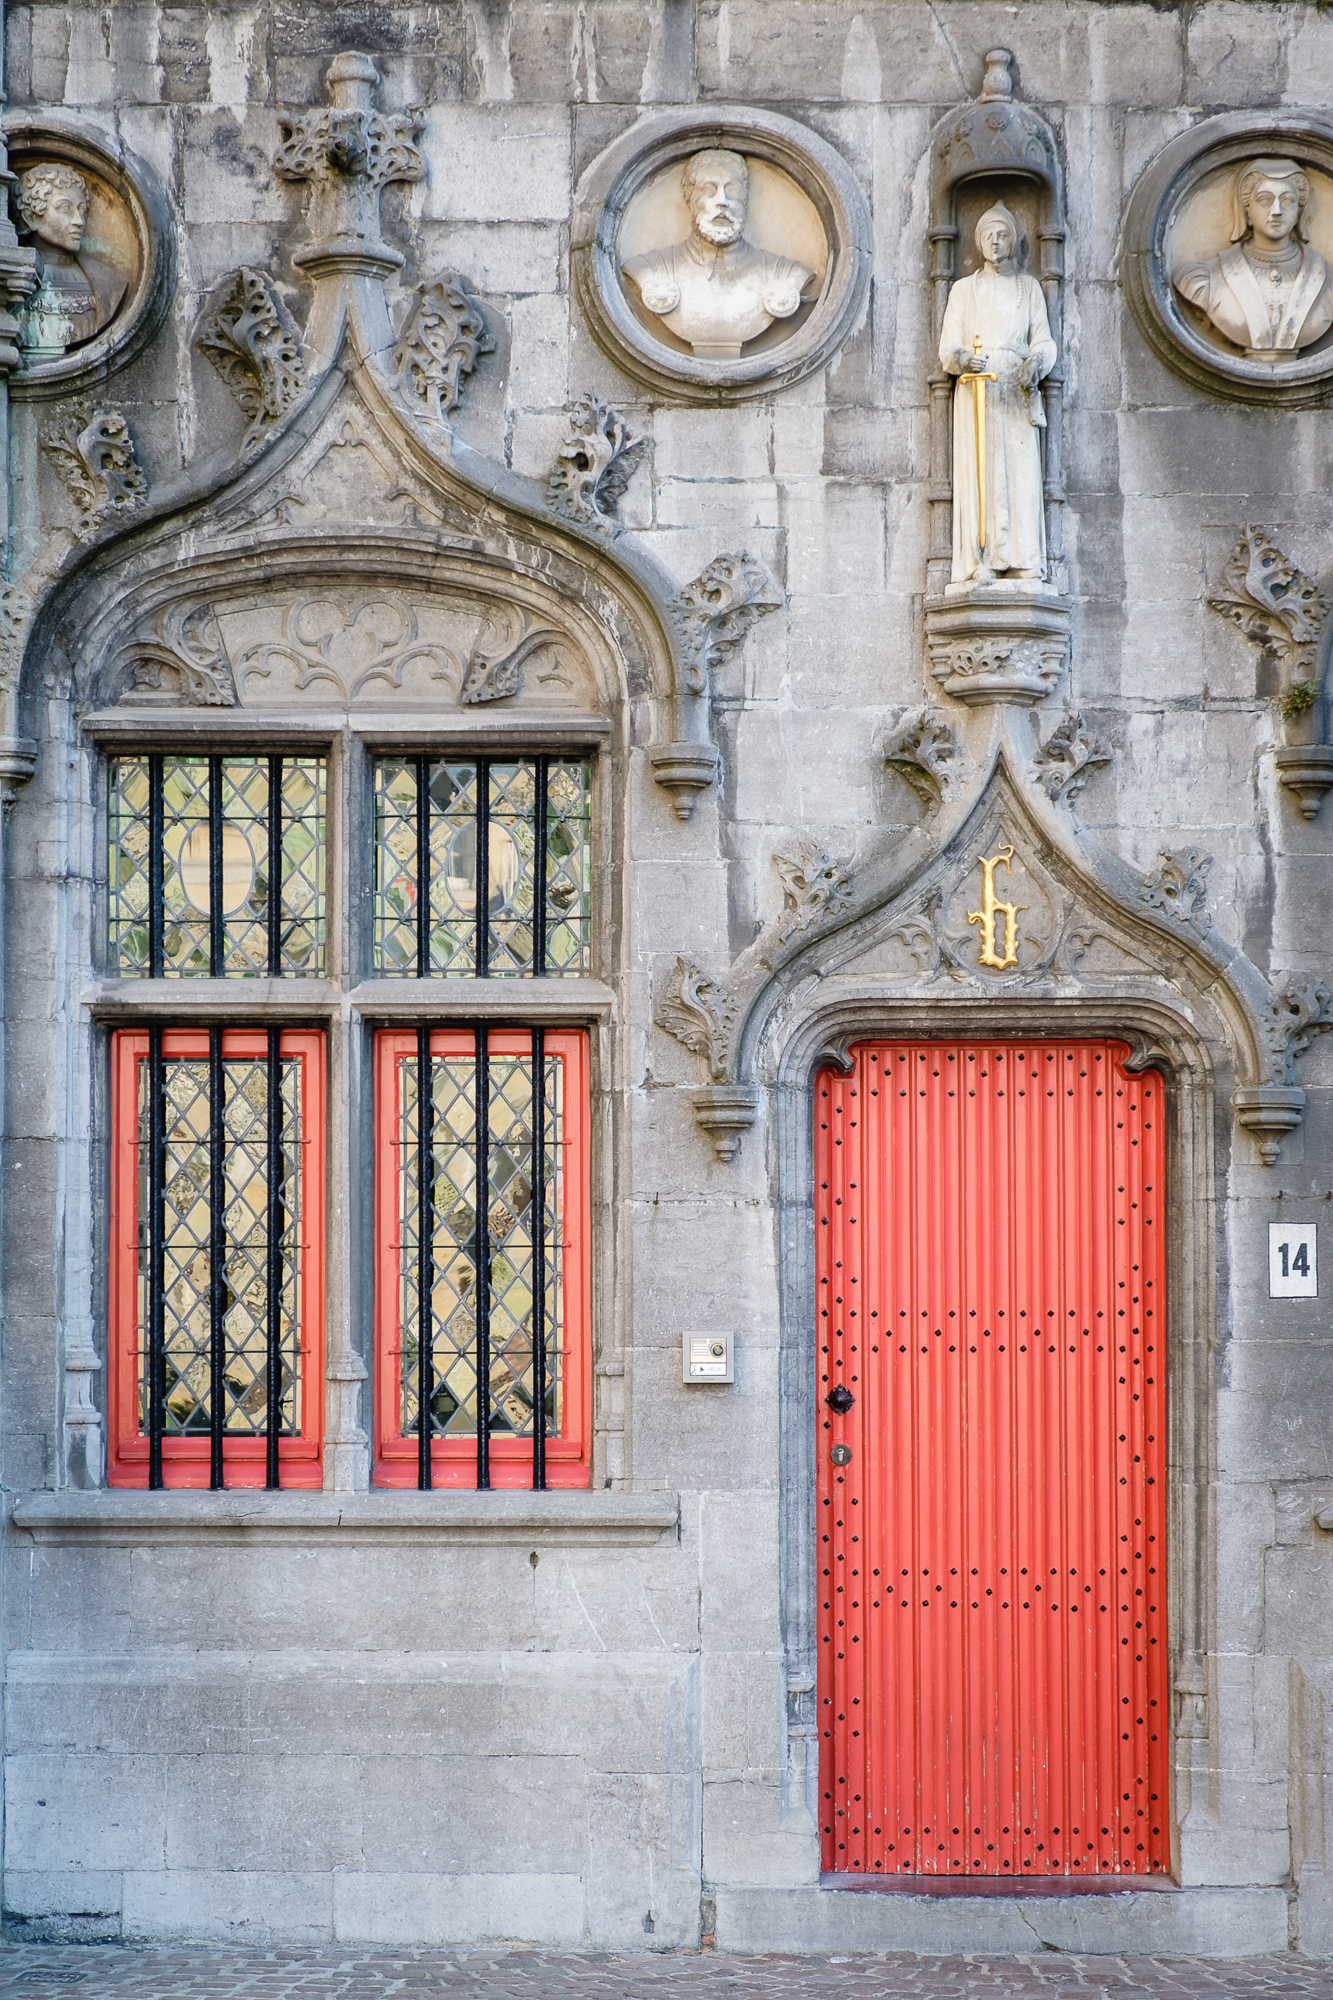 A photo of the Basilica of the Holy Blood on Burg Square in Bruges, Belgium taken by Trevor Sherwin